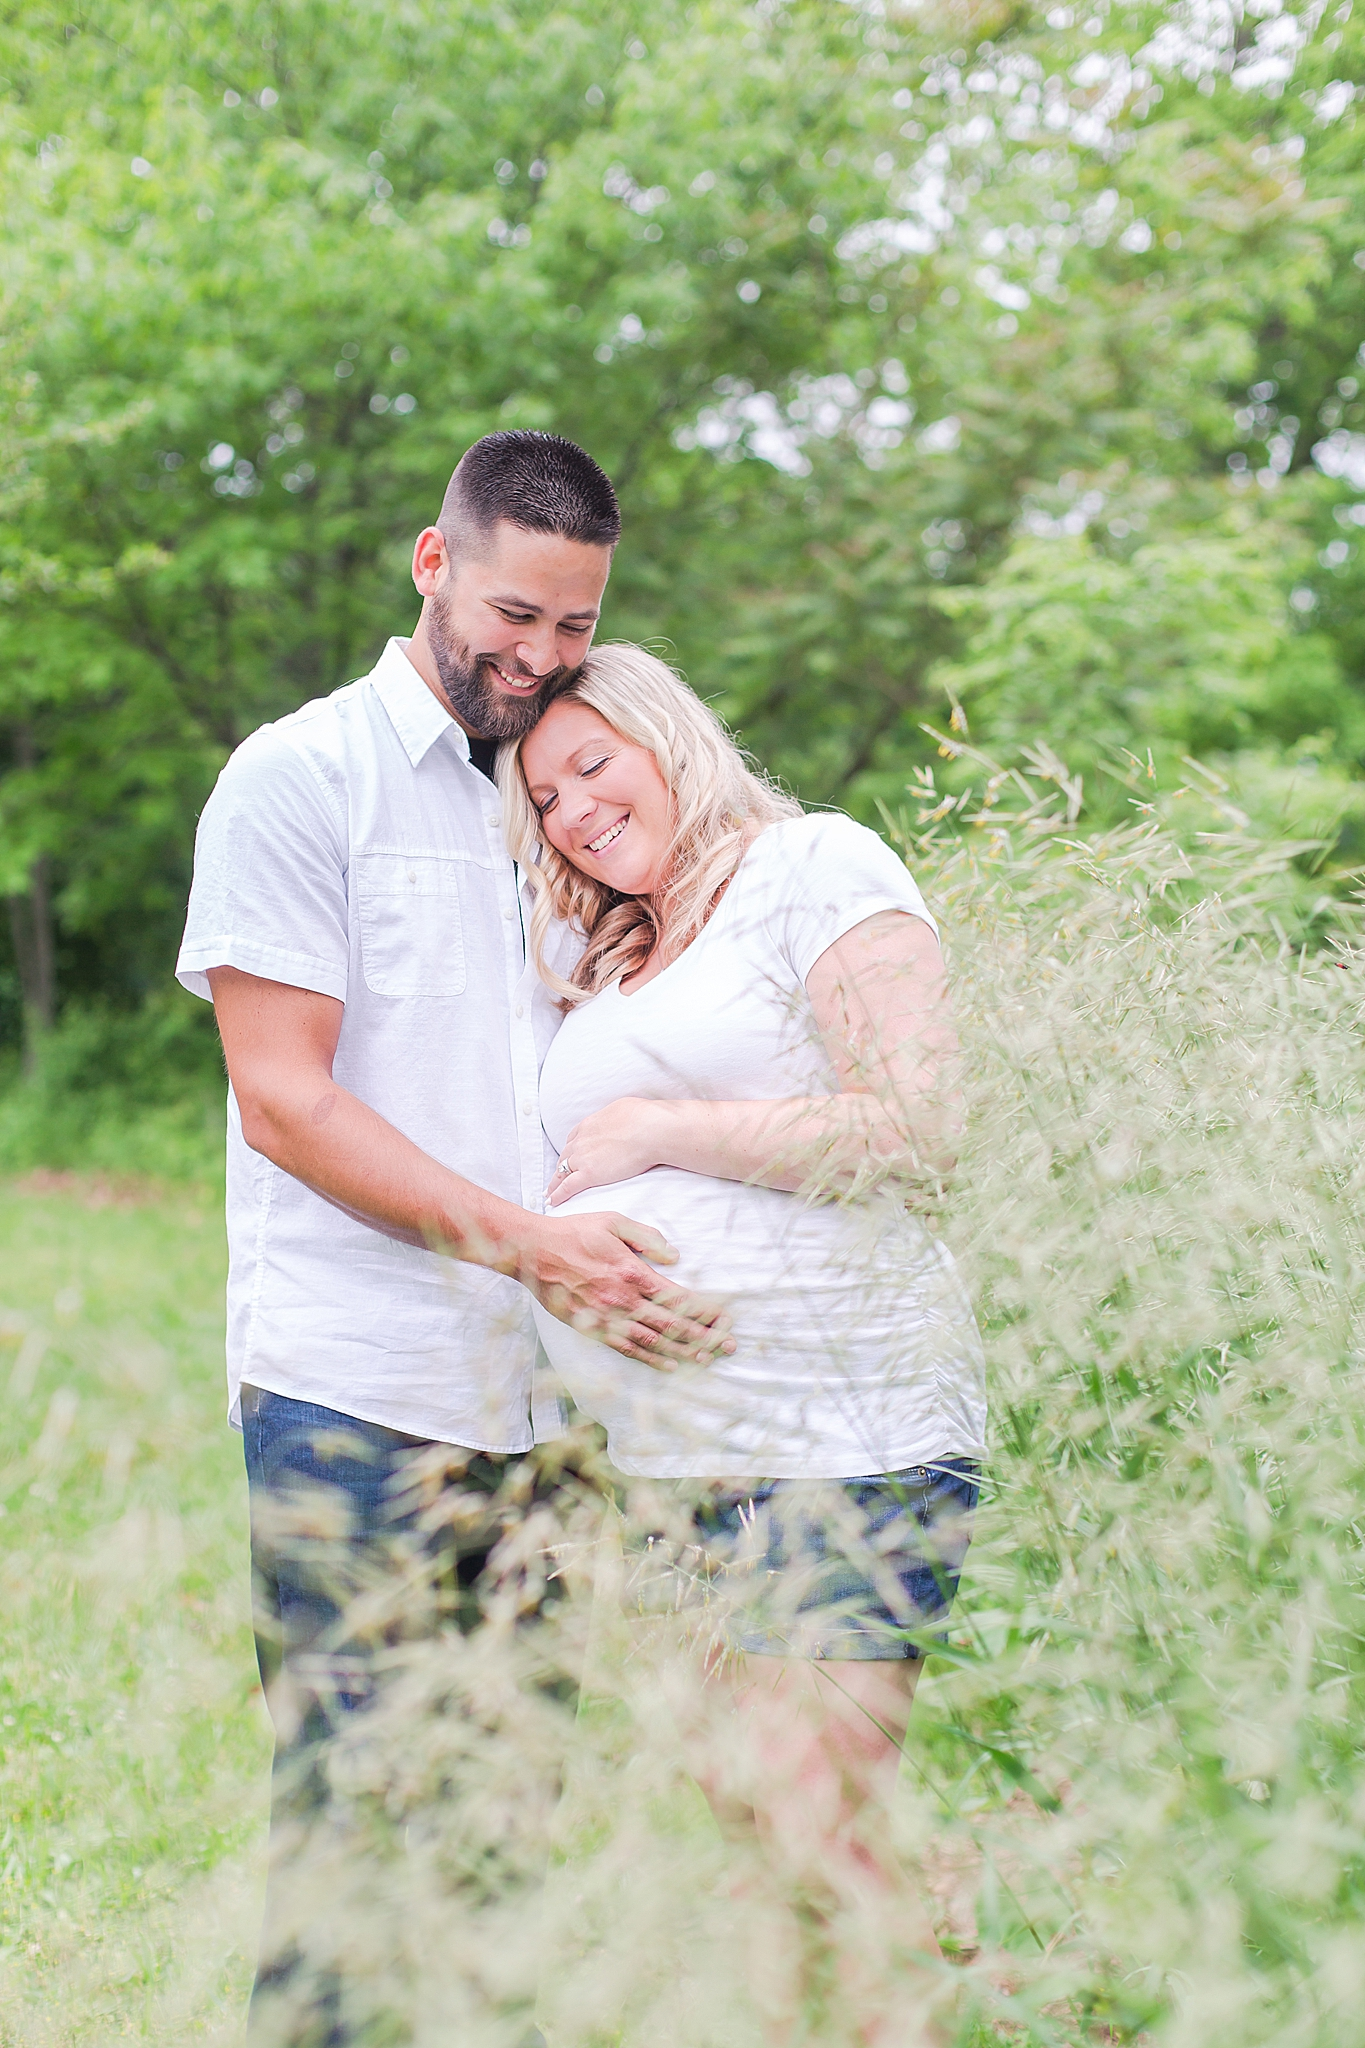 detroit-wedding-photographer-kensington-metro-park-maternity-keli-derek-by-courtney-carolyn-photography_0019.jpg